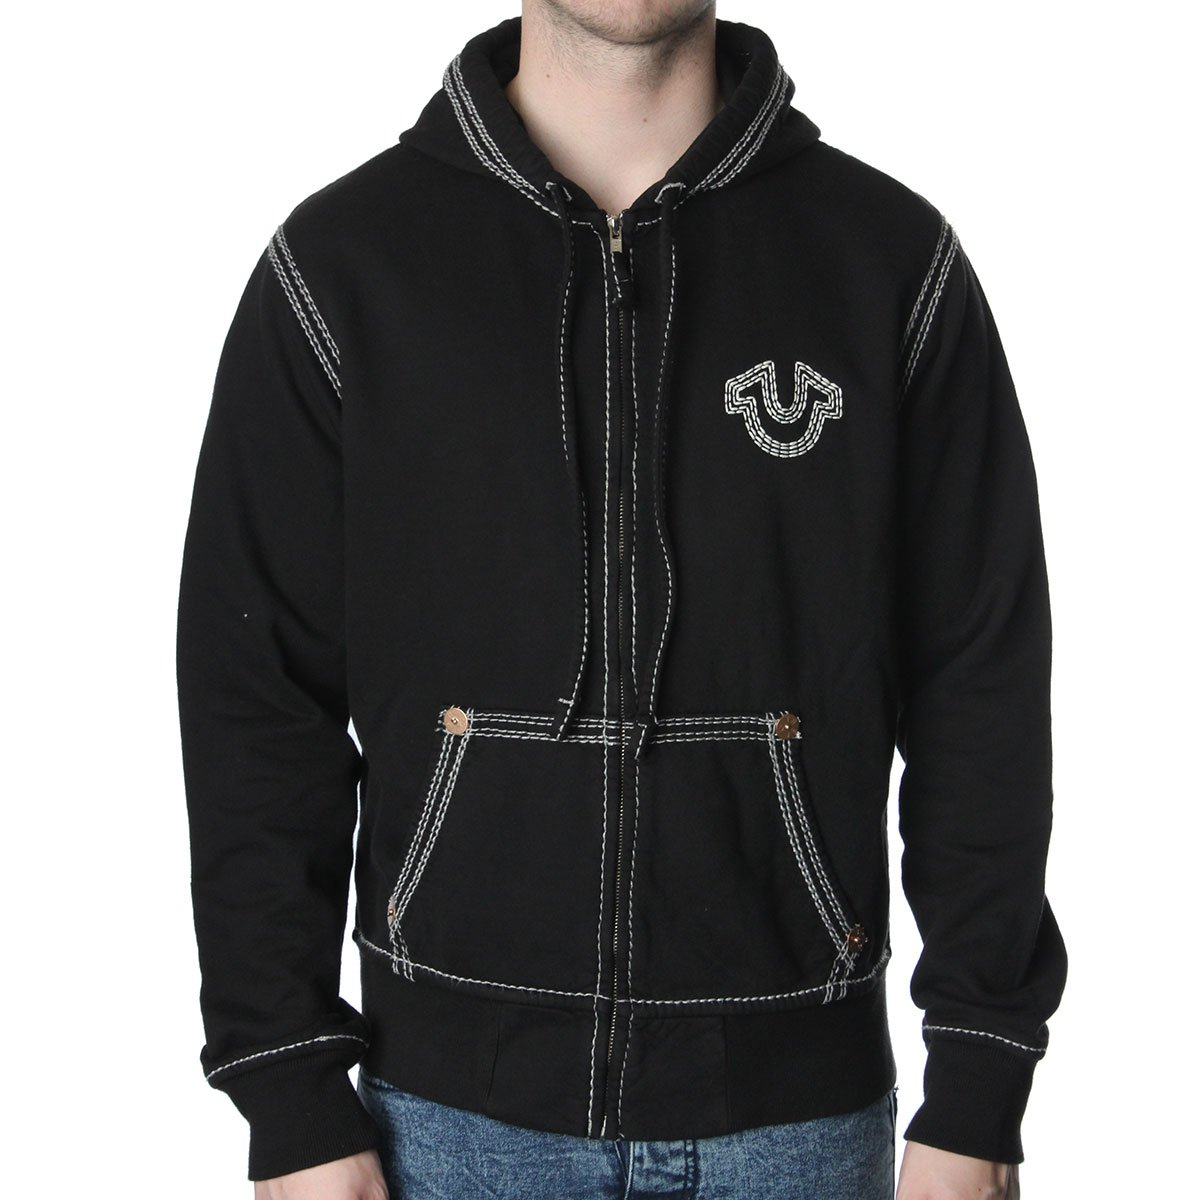 true religion stitch logo hooded jumper true religion from the menswear site uk. Black Bedroom Furniture Sets. Home Design Ideas